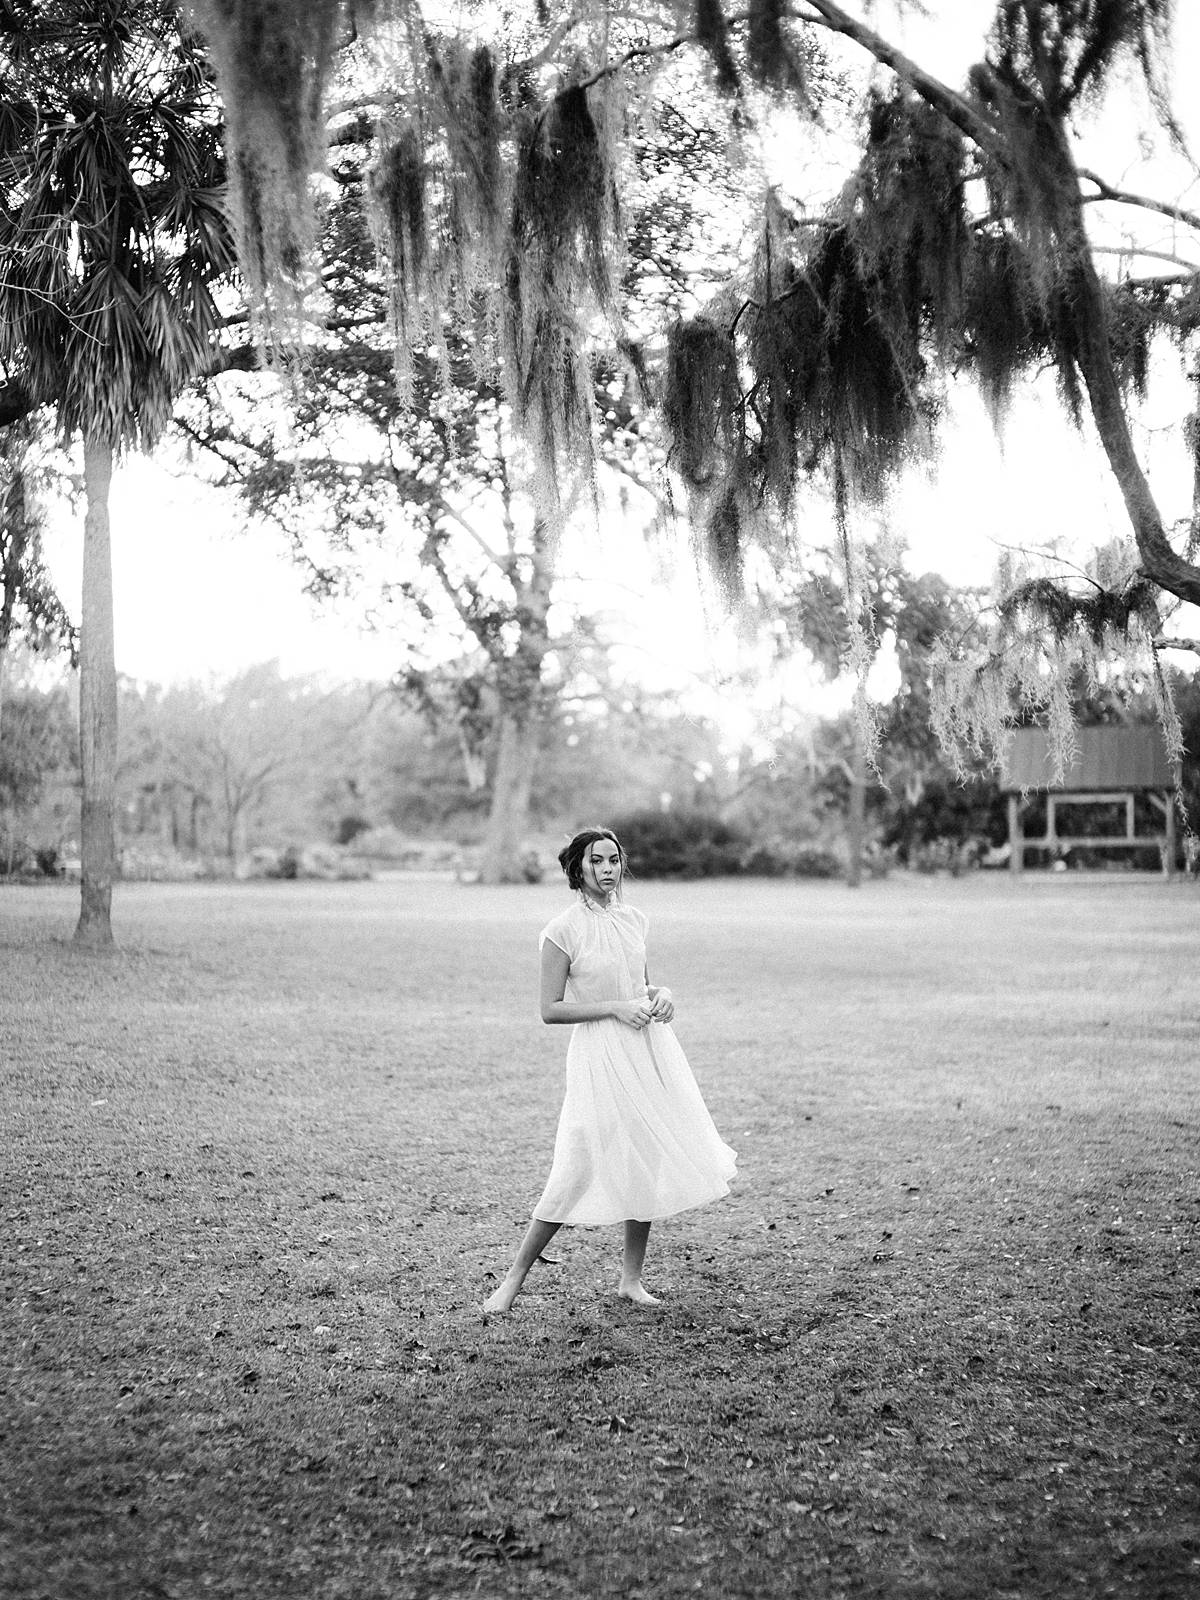 1911 paulina hampton park charleston fall portraits sony leica 00018_web